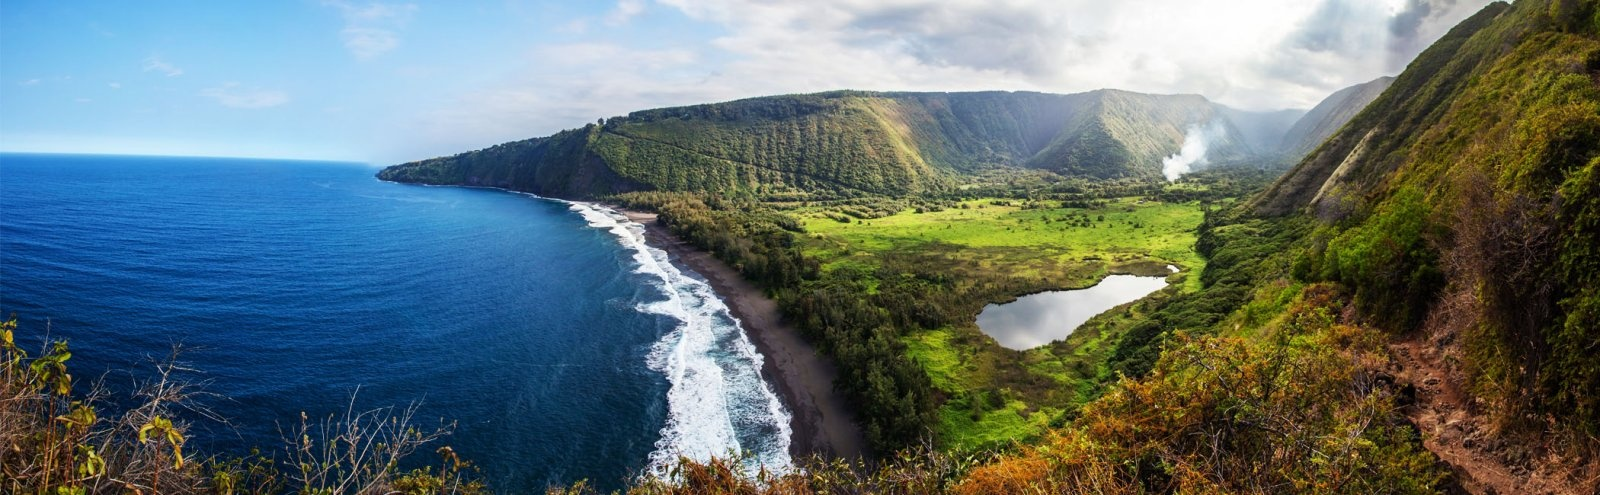 Waipio Valley - Big Island